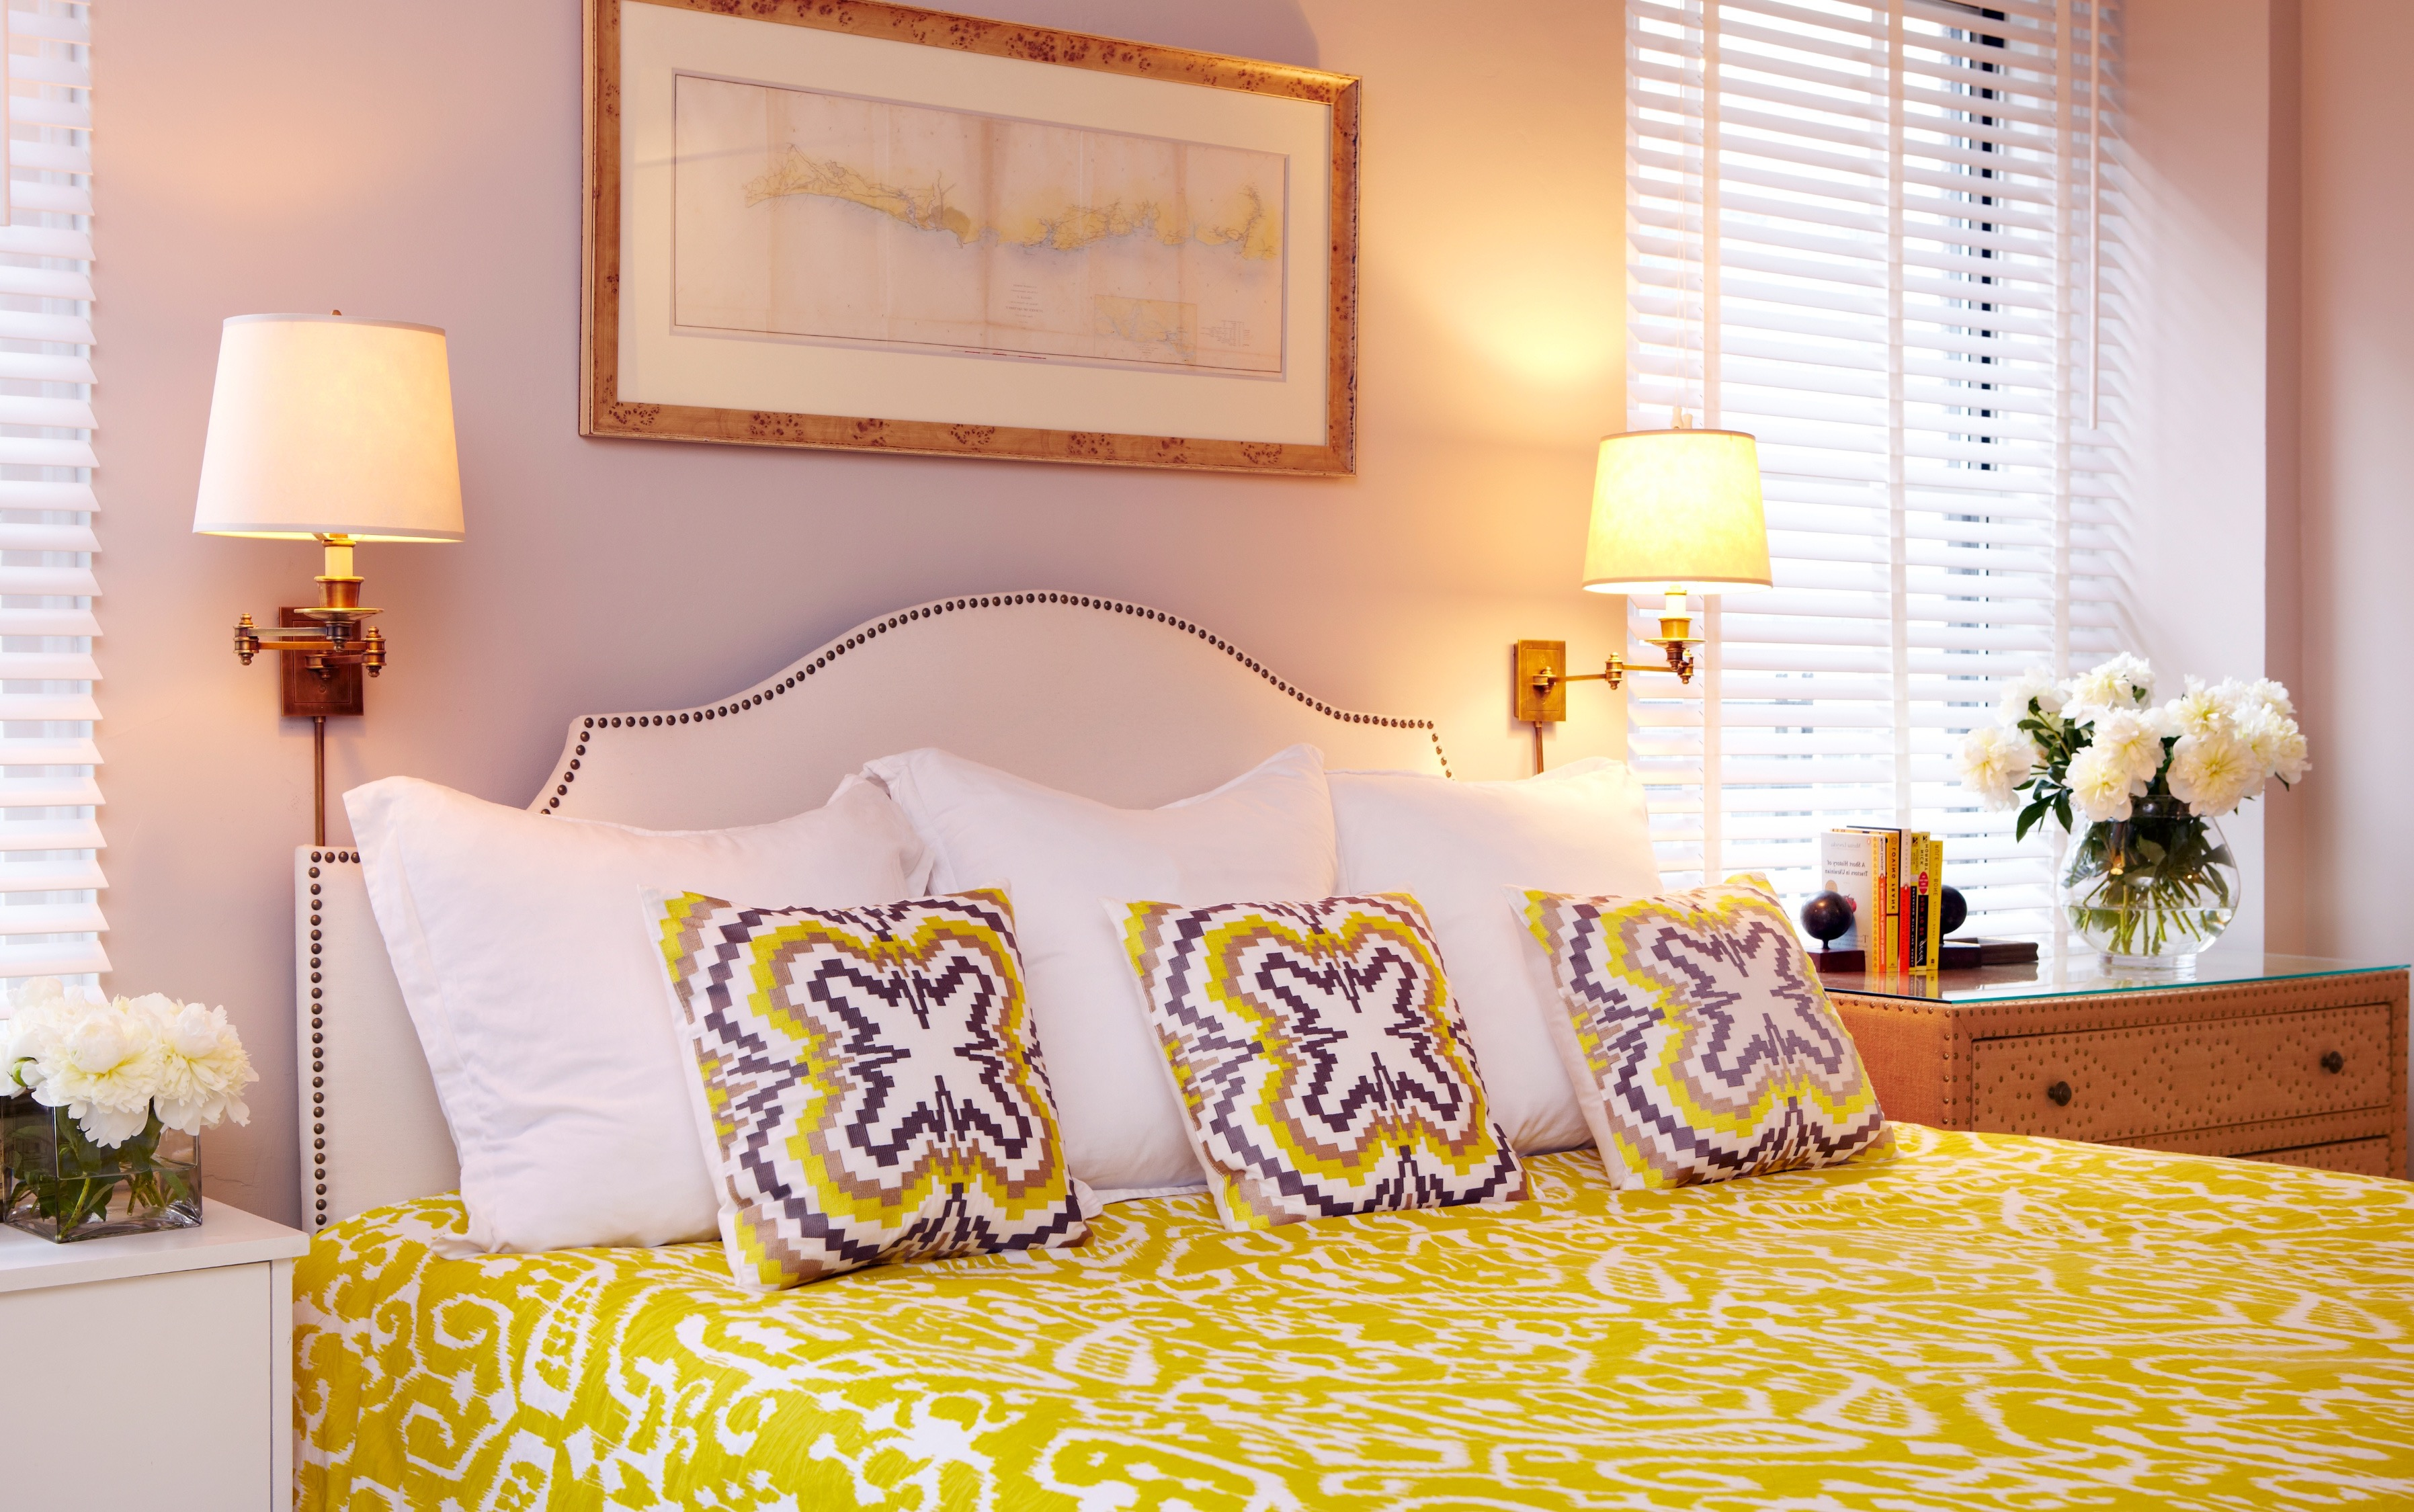 Modern Lighting For Hotel Like Bedroom With Vibrant Yellow Bedding (Image 23 of 25)